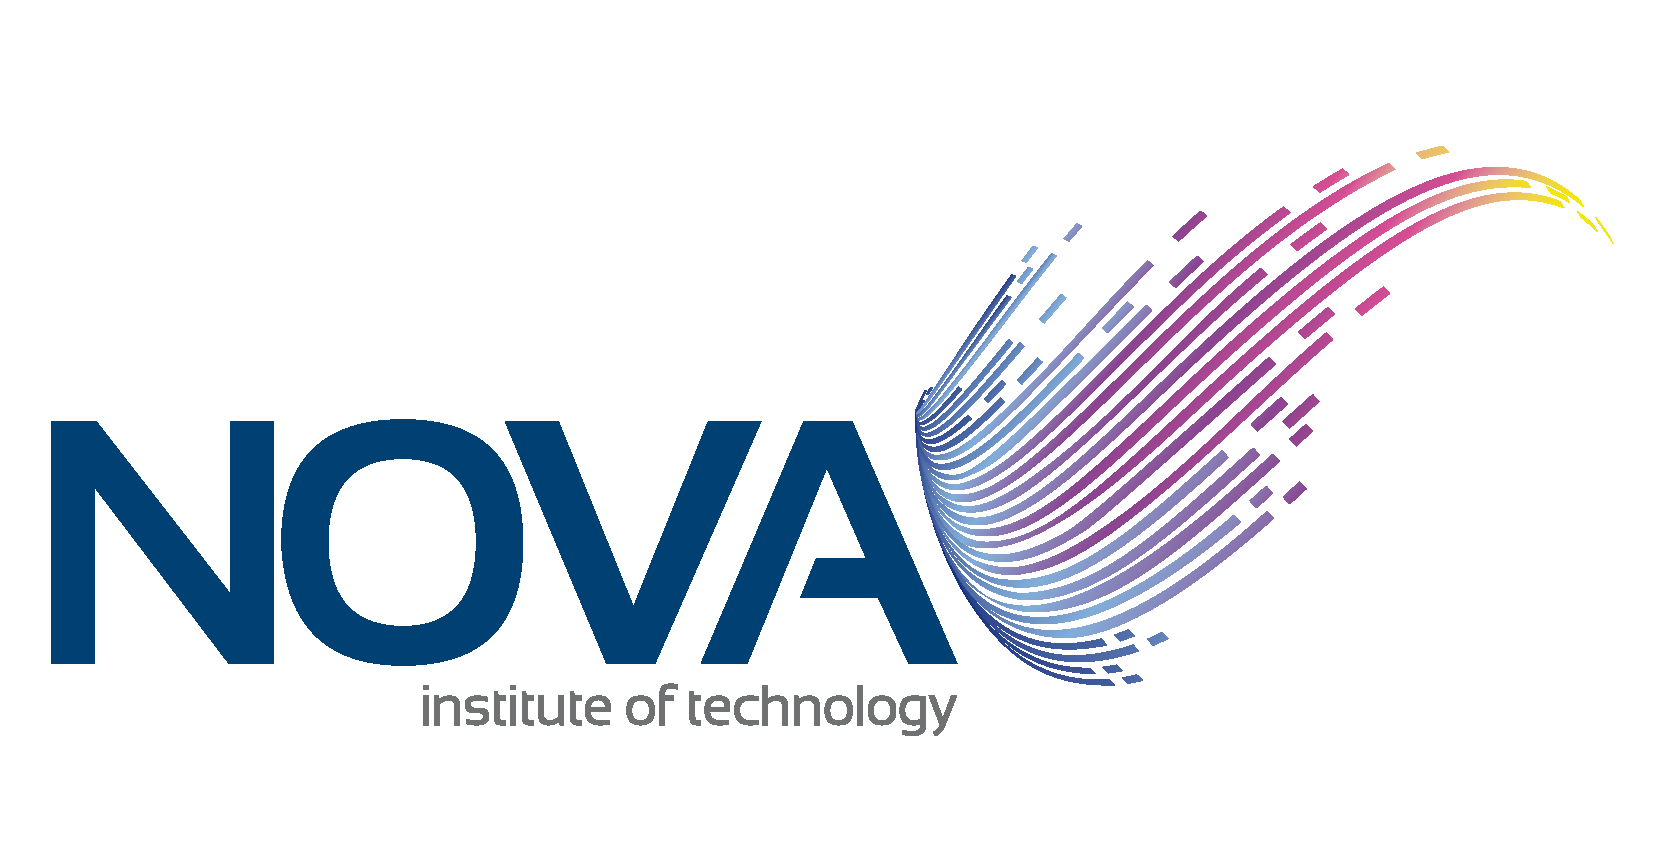 Nova Institute of Technology